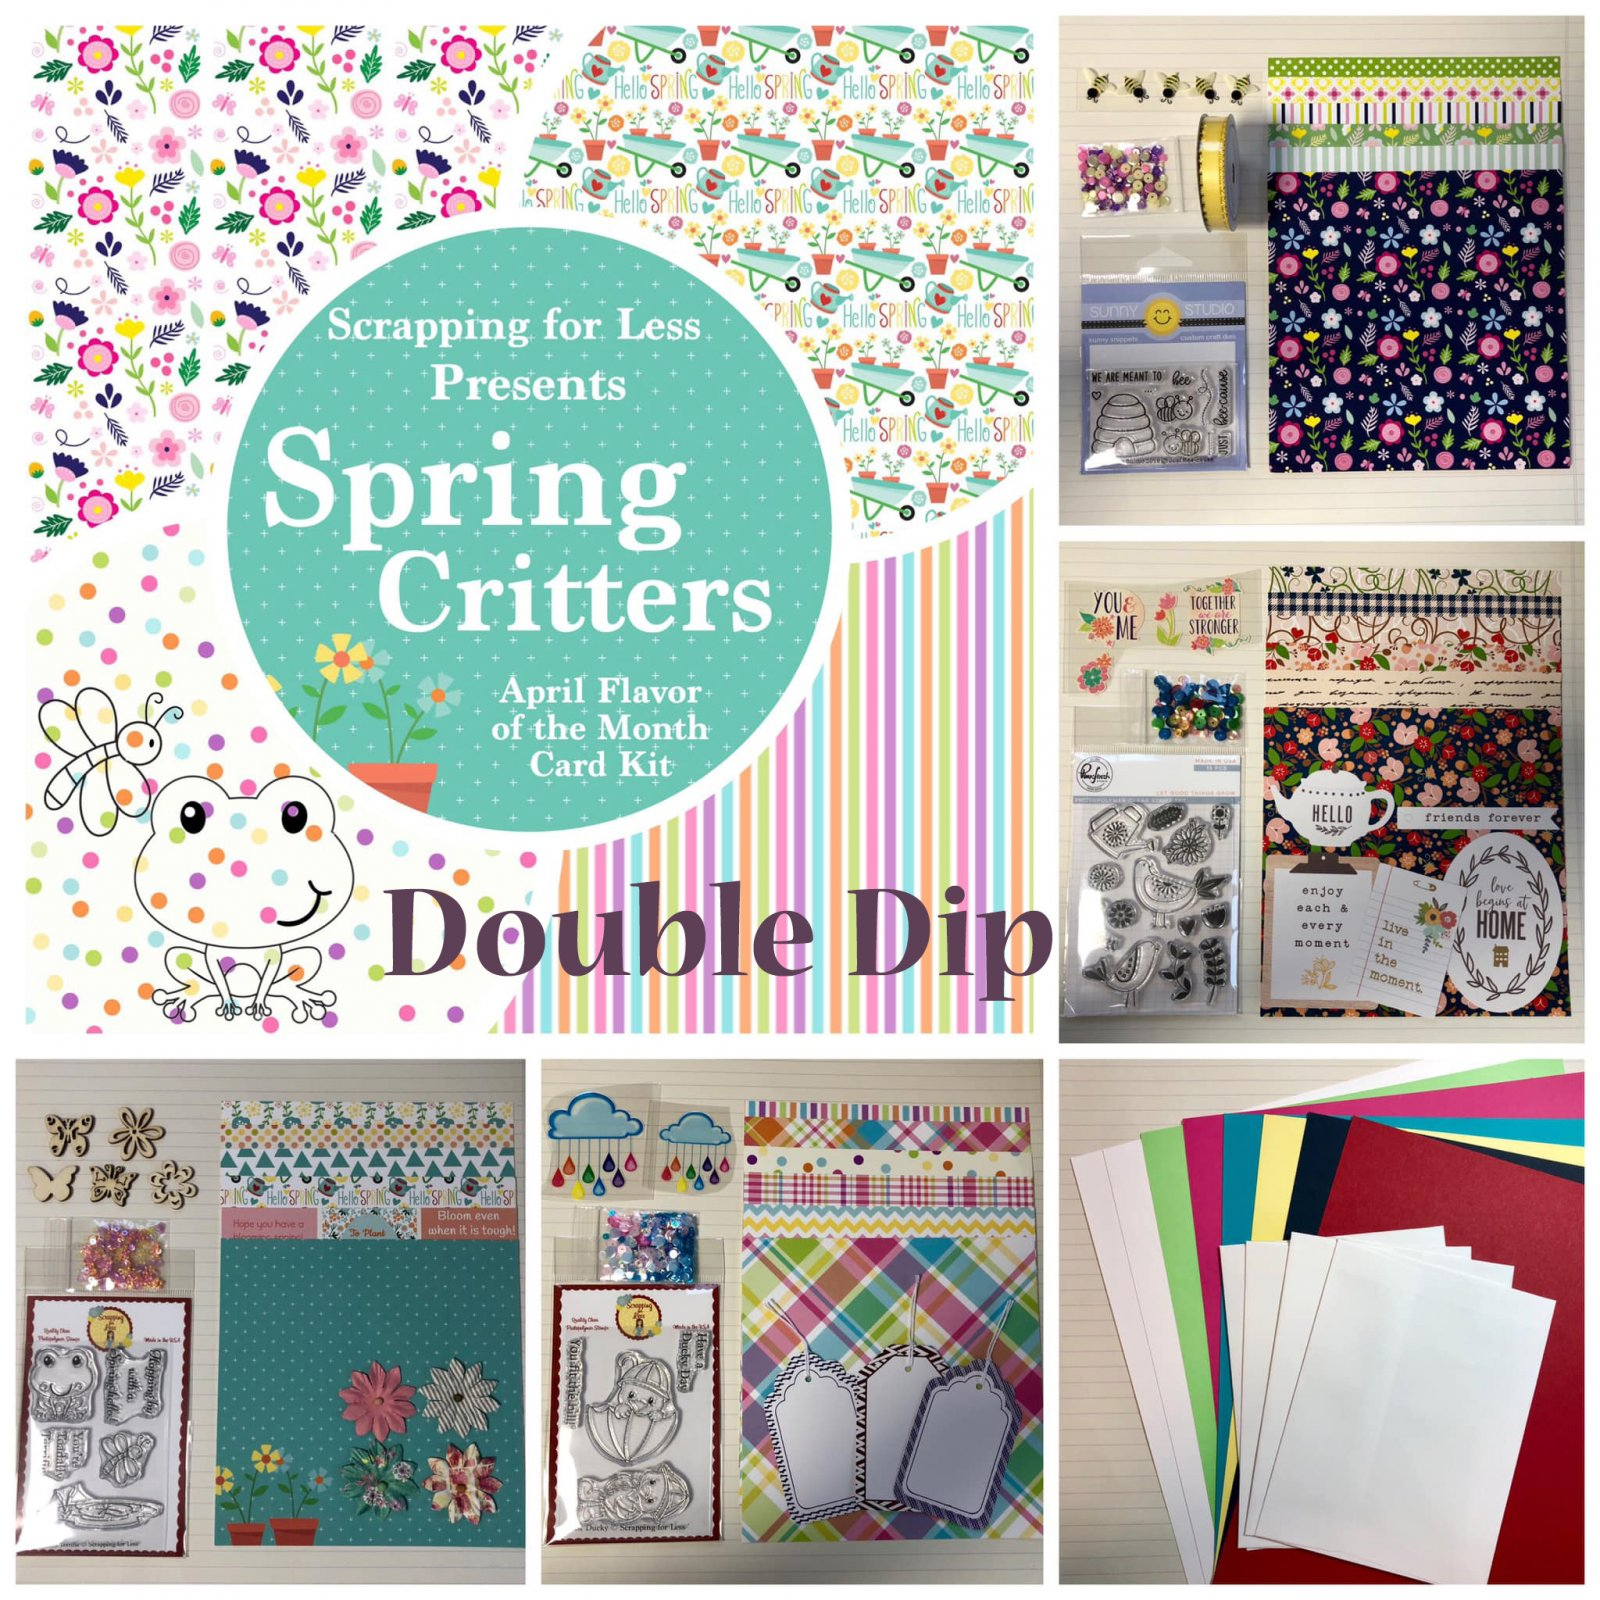 April Flavor of the Month Double Dip Spring Critters